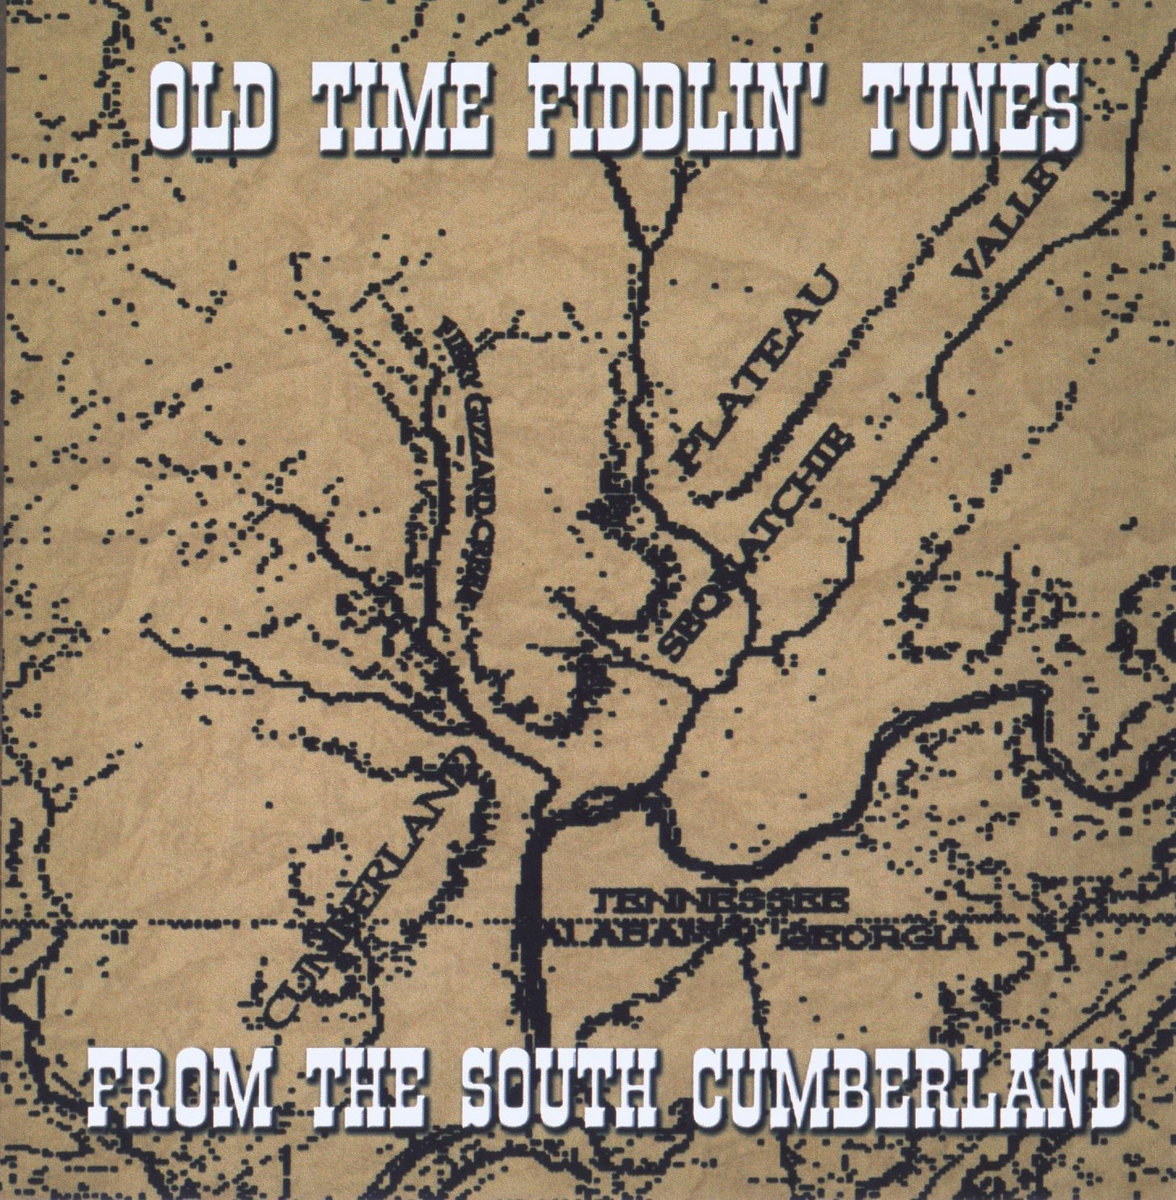 John Coopers Tune Fiery Gizzard Old Time String Band - Old time world map